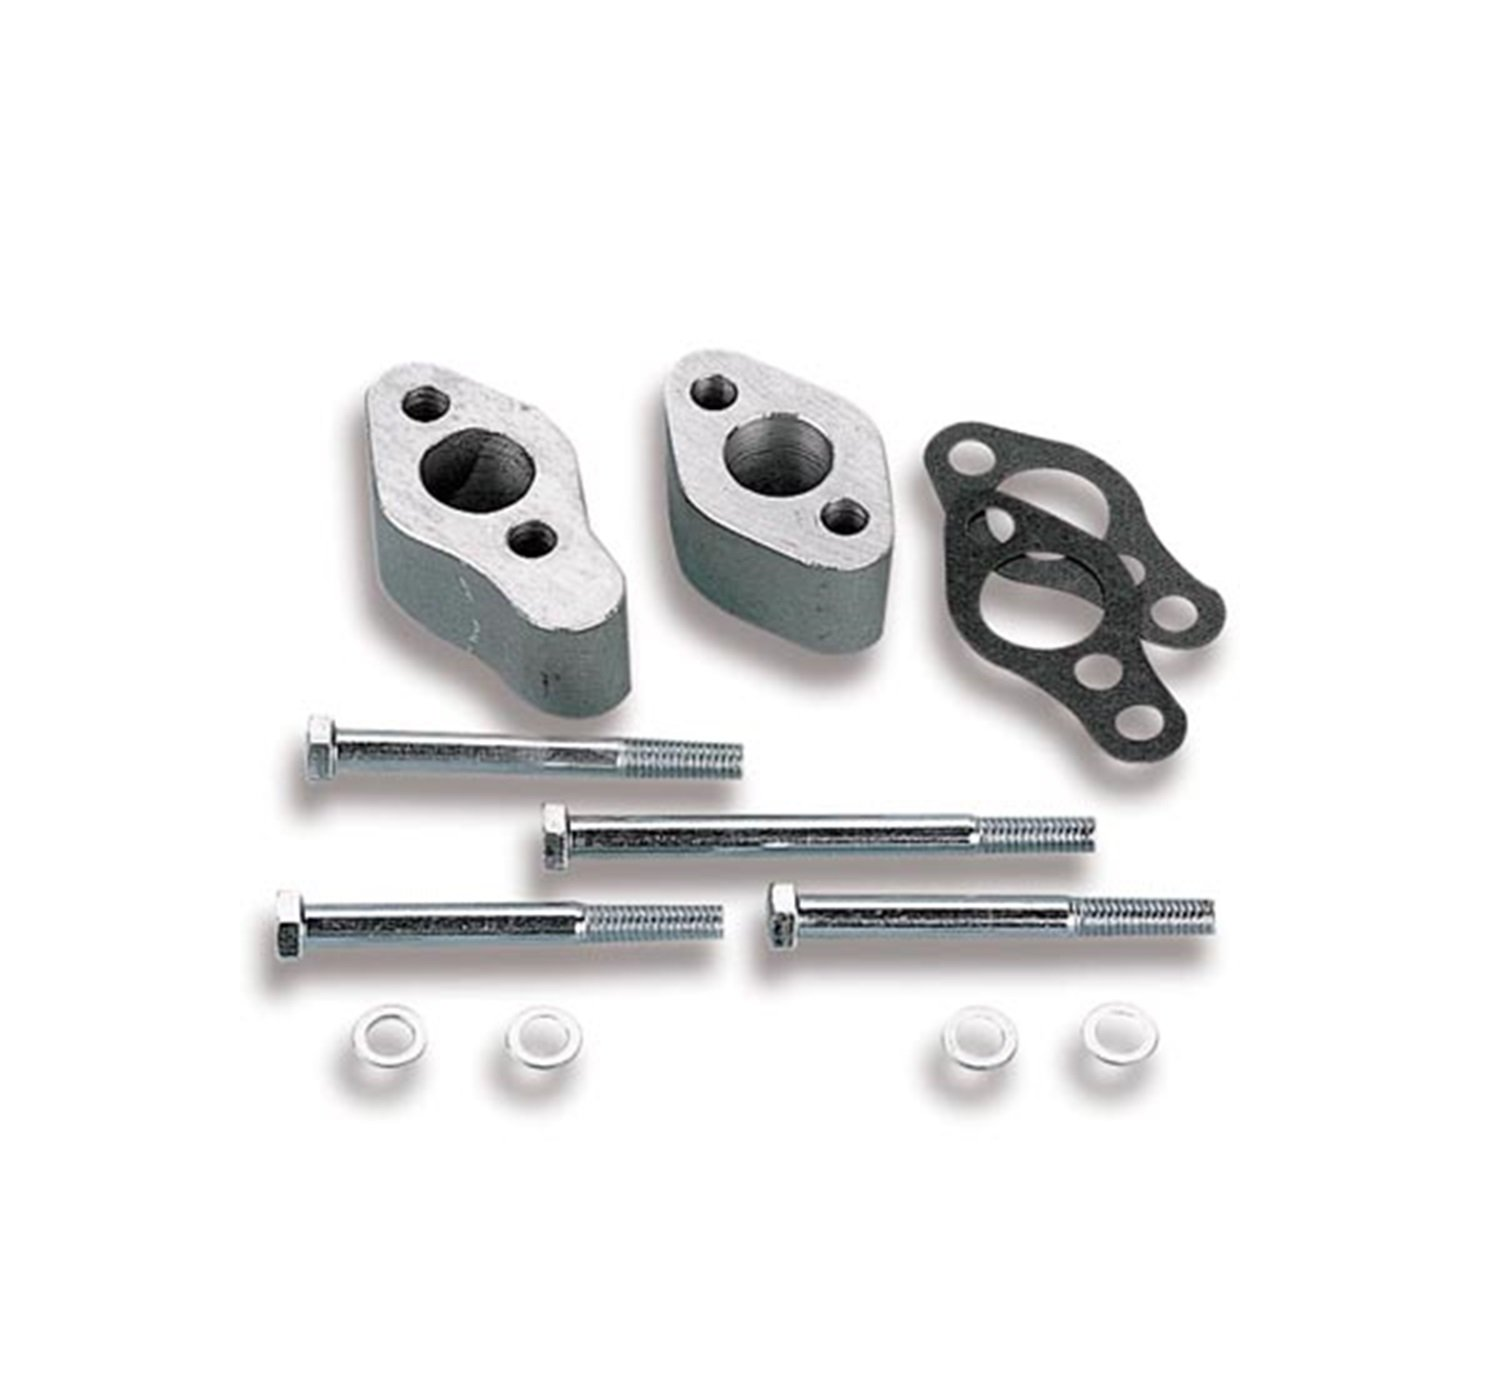 Weiand 8207 Wtr Pump Spacer Kit by Weiand